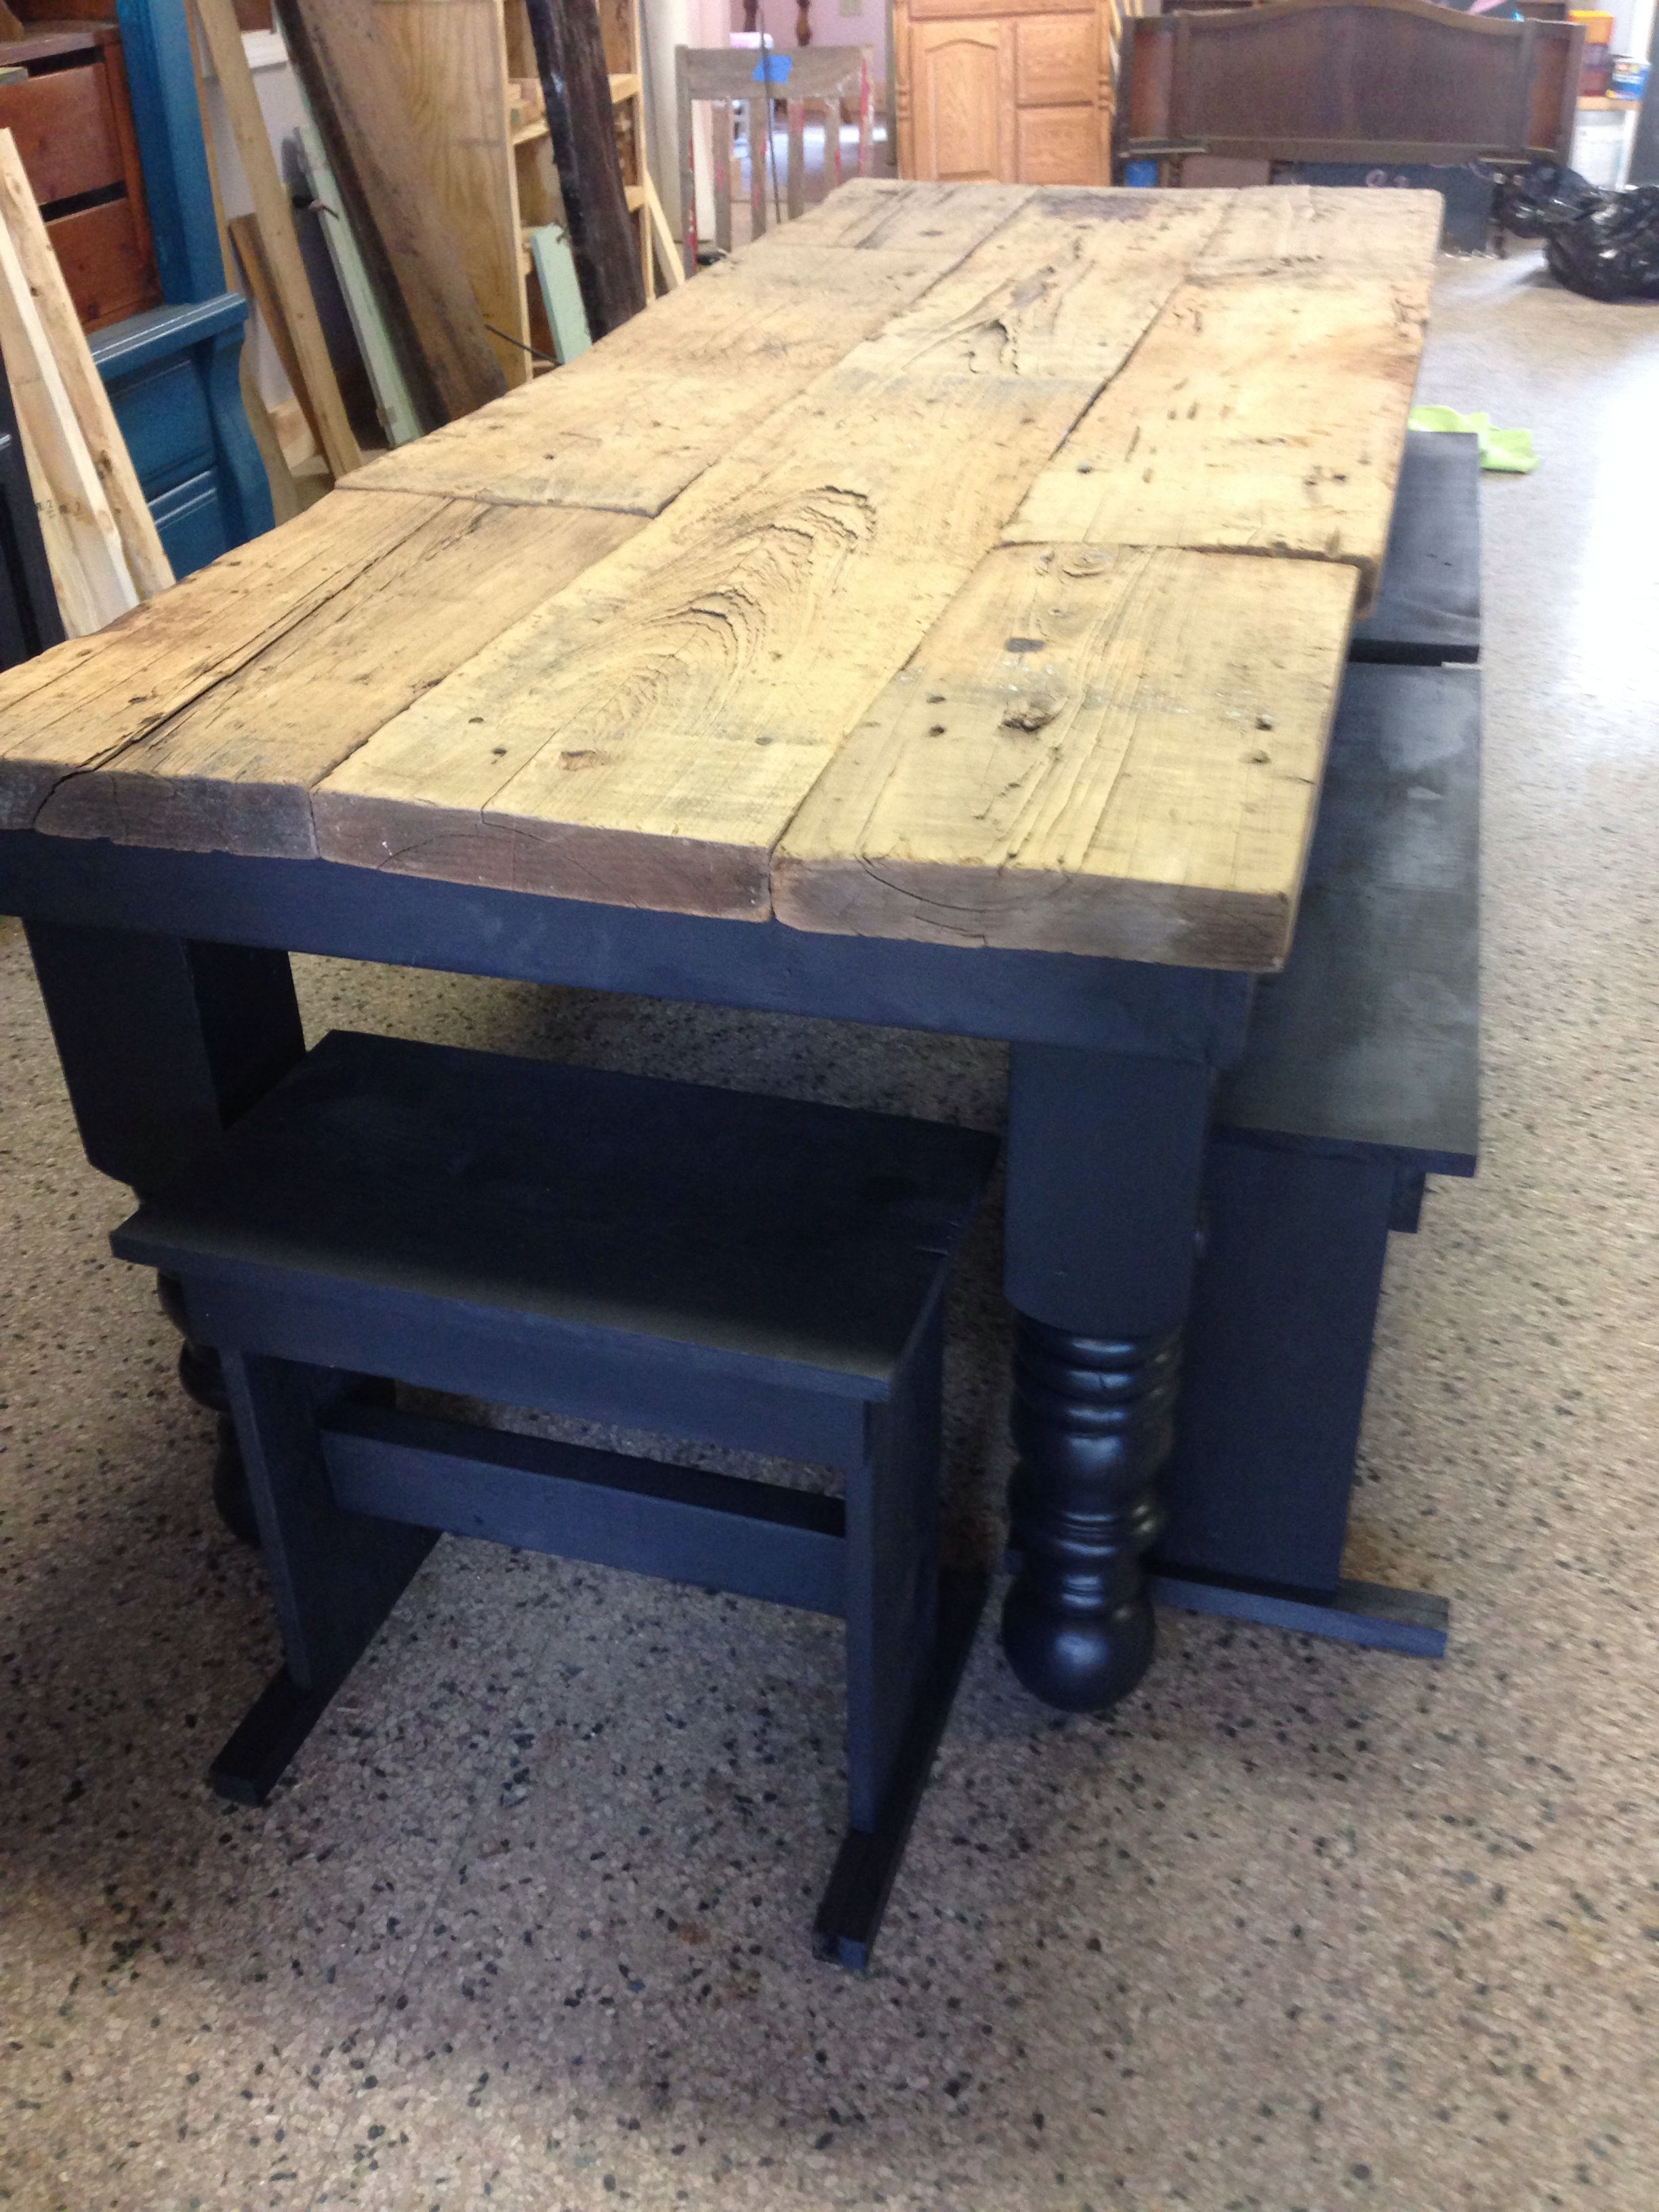 Custom Table Made From 100 Year Old Wooden Planks And An Old